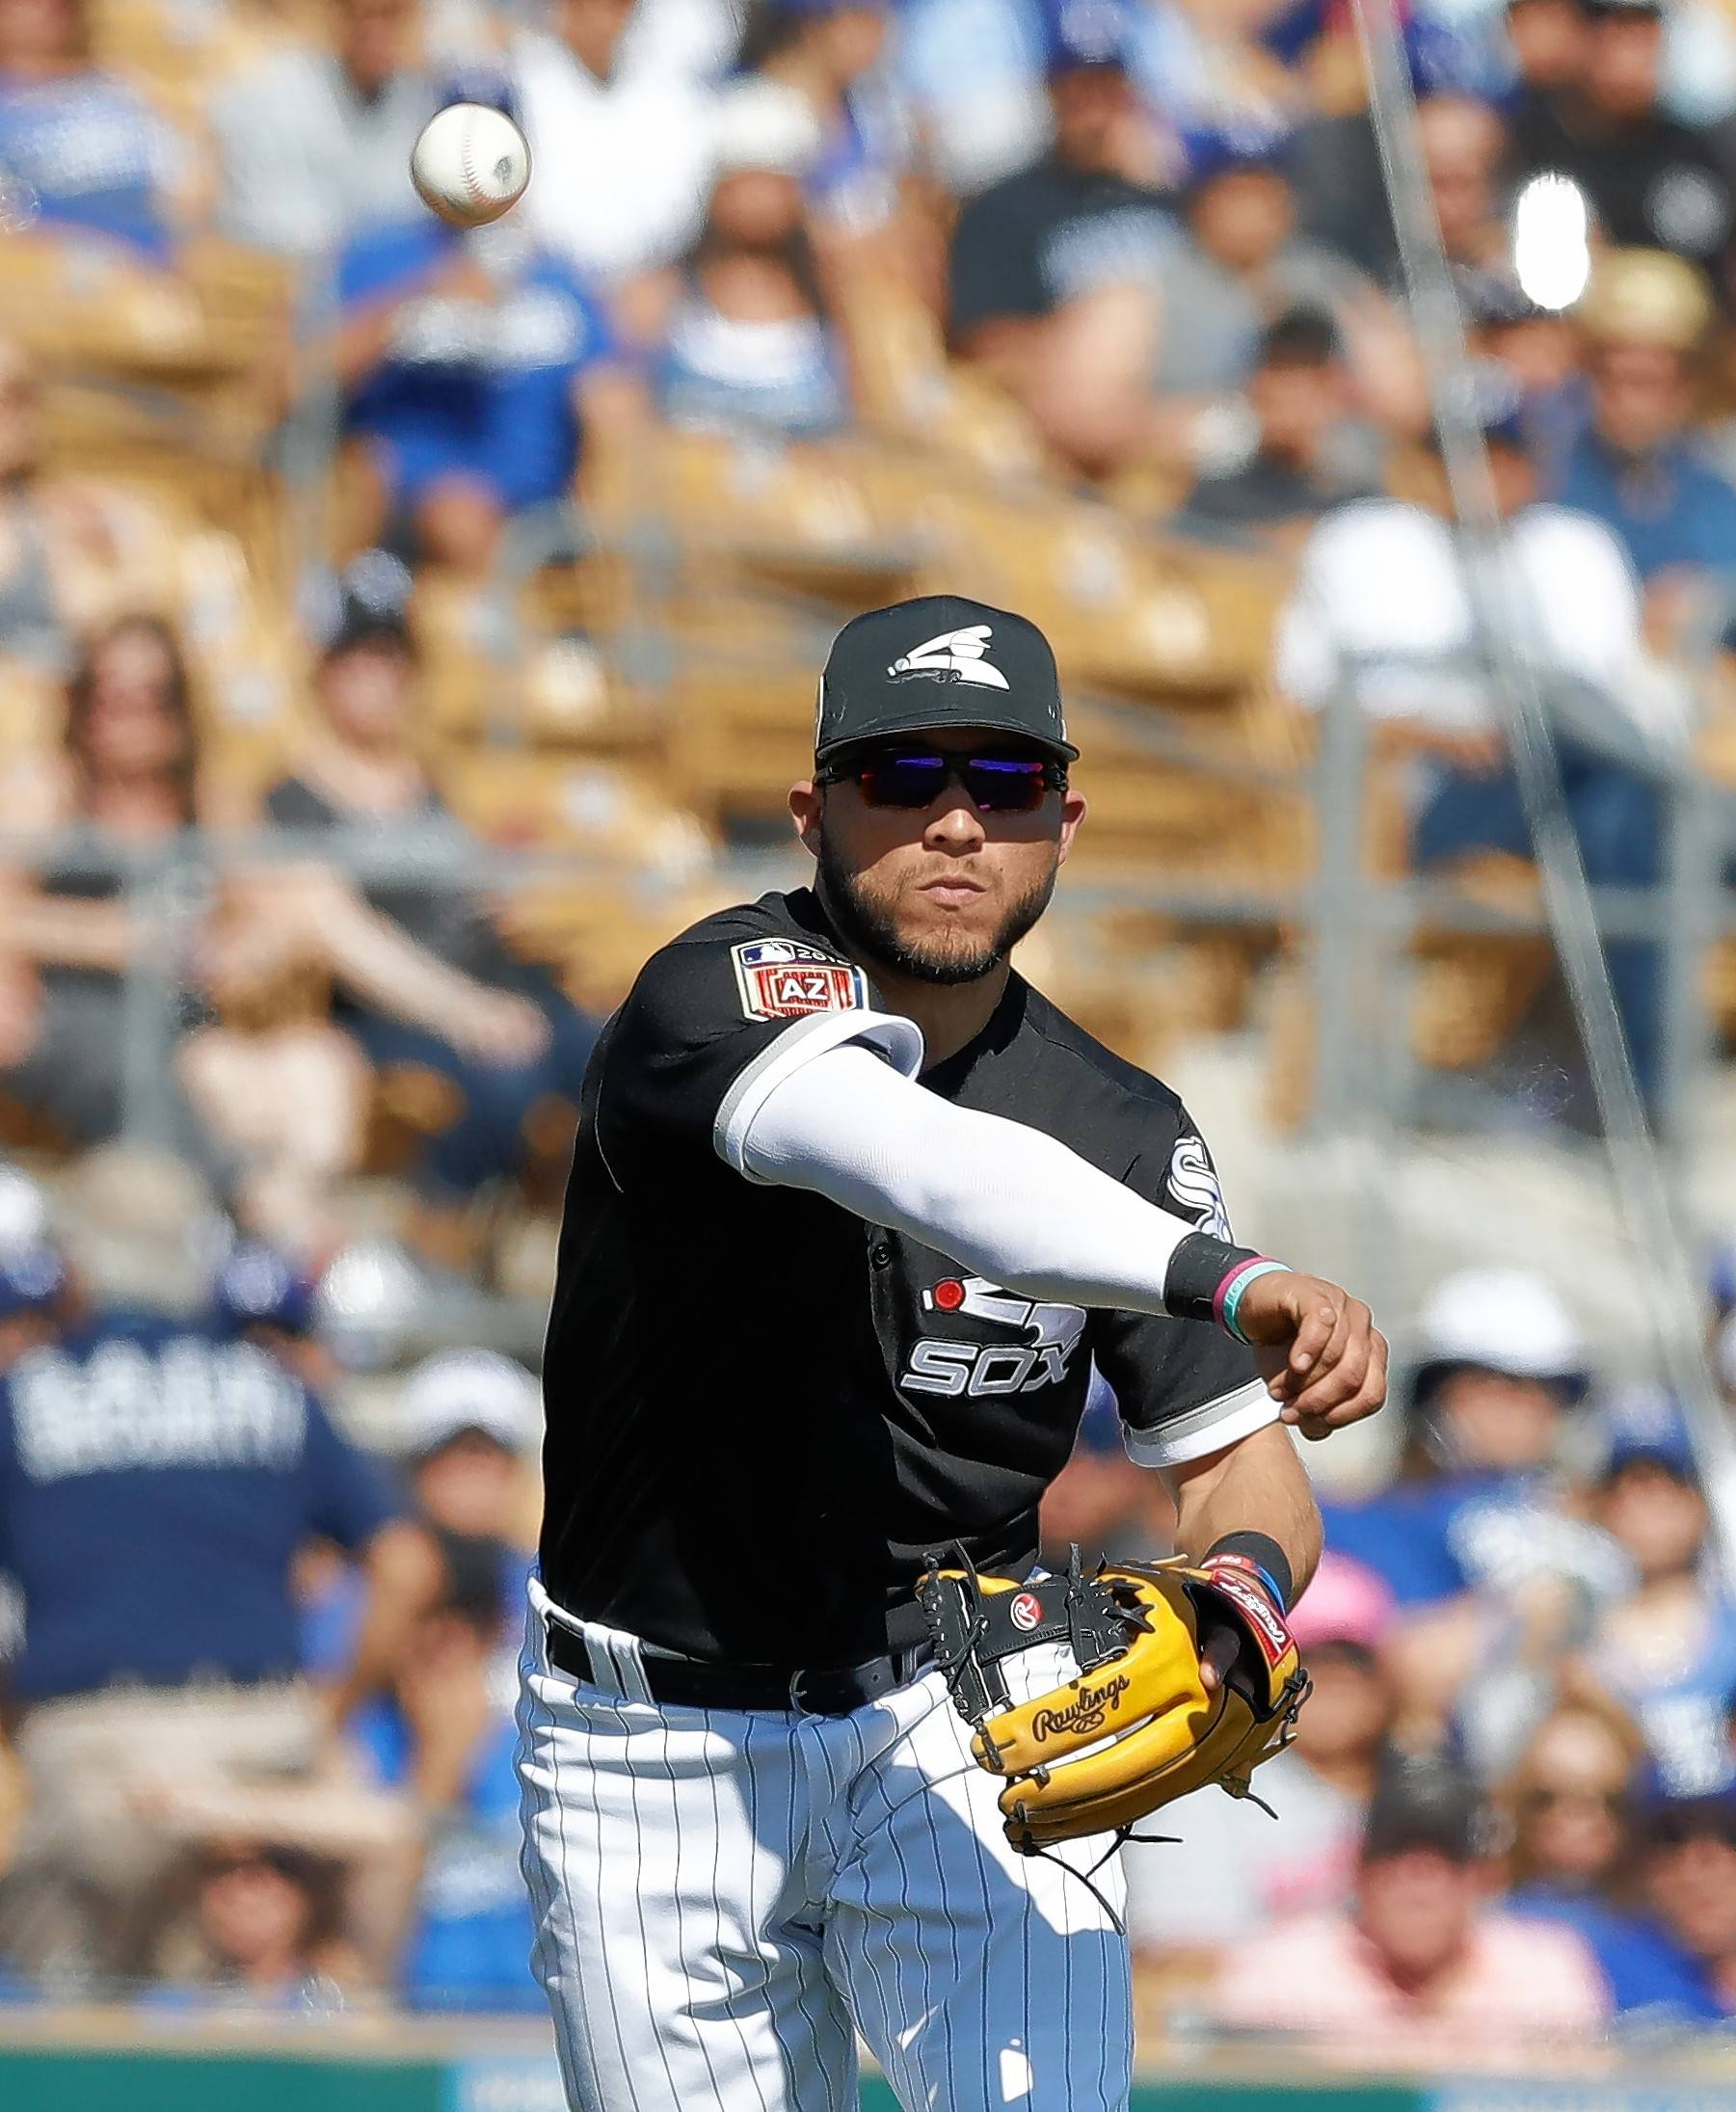 Chicago White Sox infielder Yolmer Sanchez was very effective coming off the bench last season.